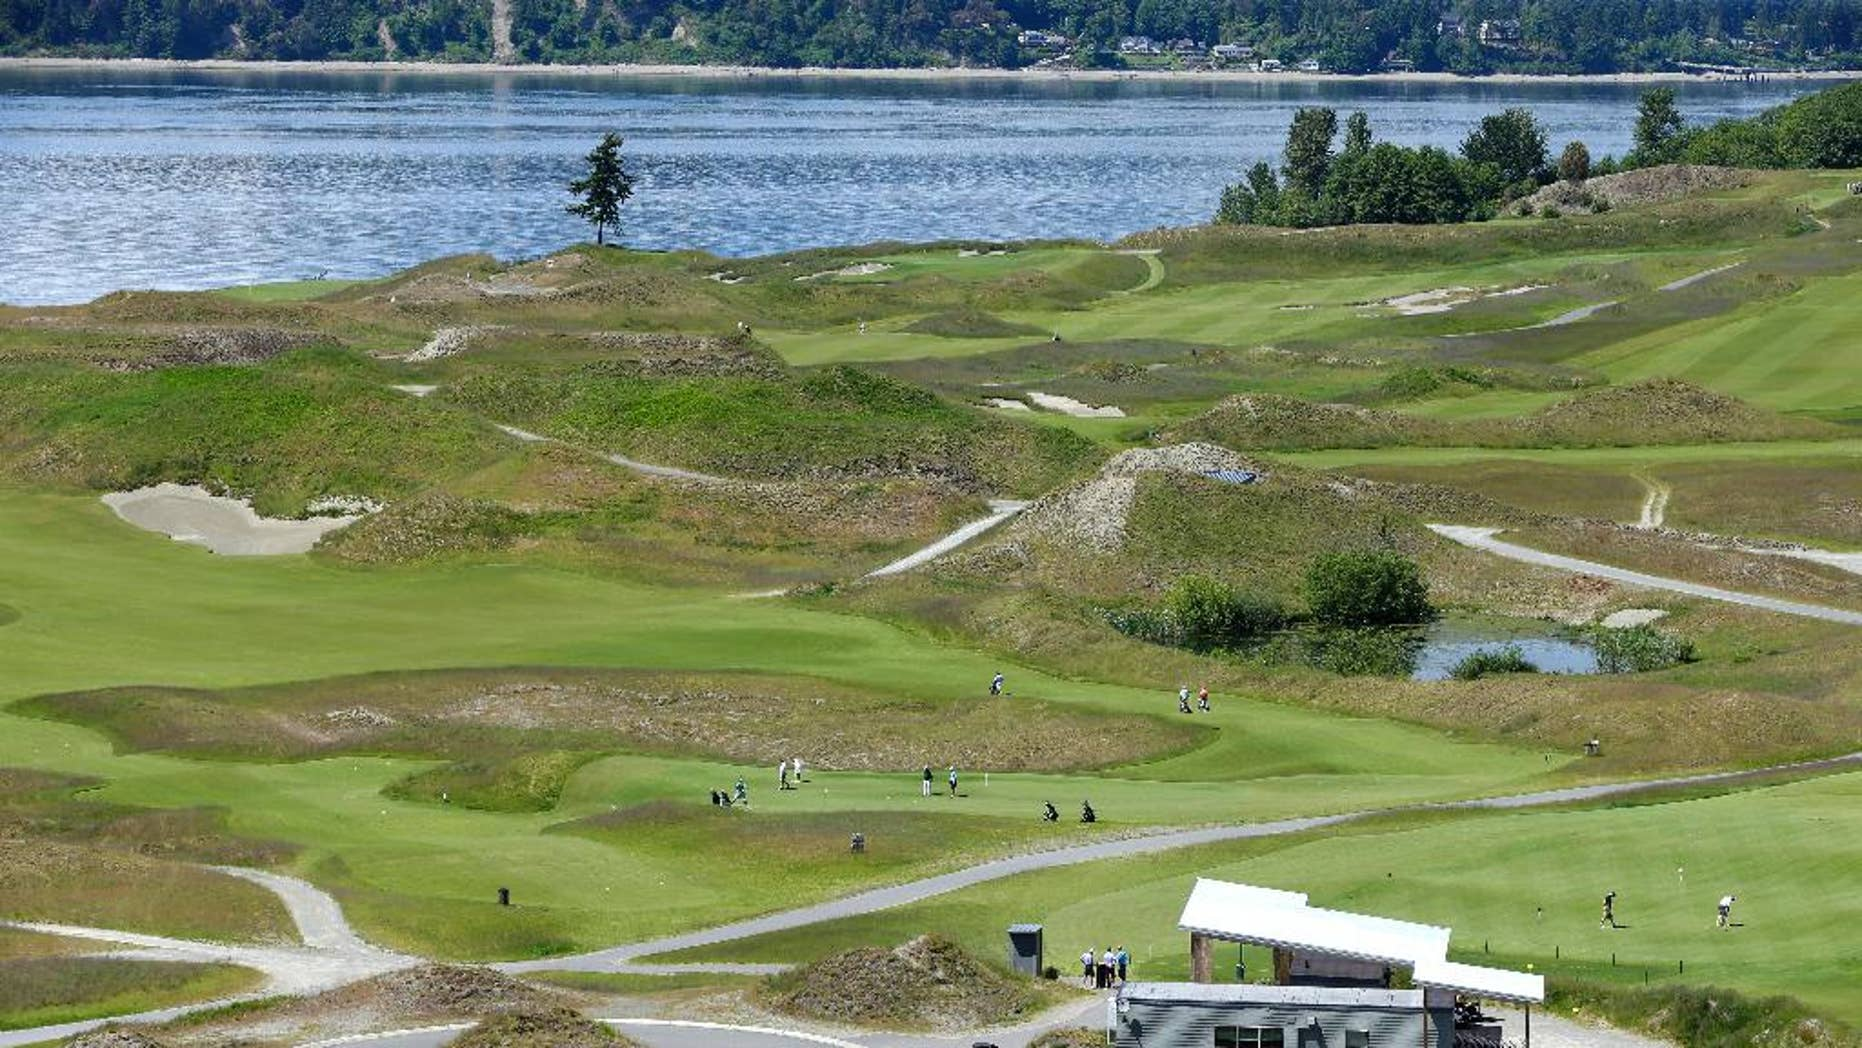 FILE - In this May 20, 2014, file photo, the Chambers Bay Golf Course, including the signature lone tree, is seen from the clubhouse in University Place, Wash. The U.S. Open comes to Chambers Bay in seven weeks, the first time the major is played in the Pacific Northwest.  (AP Photo/Ted S. Warren, File)